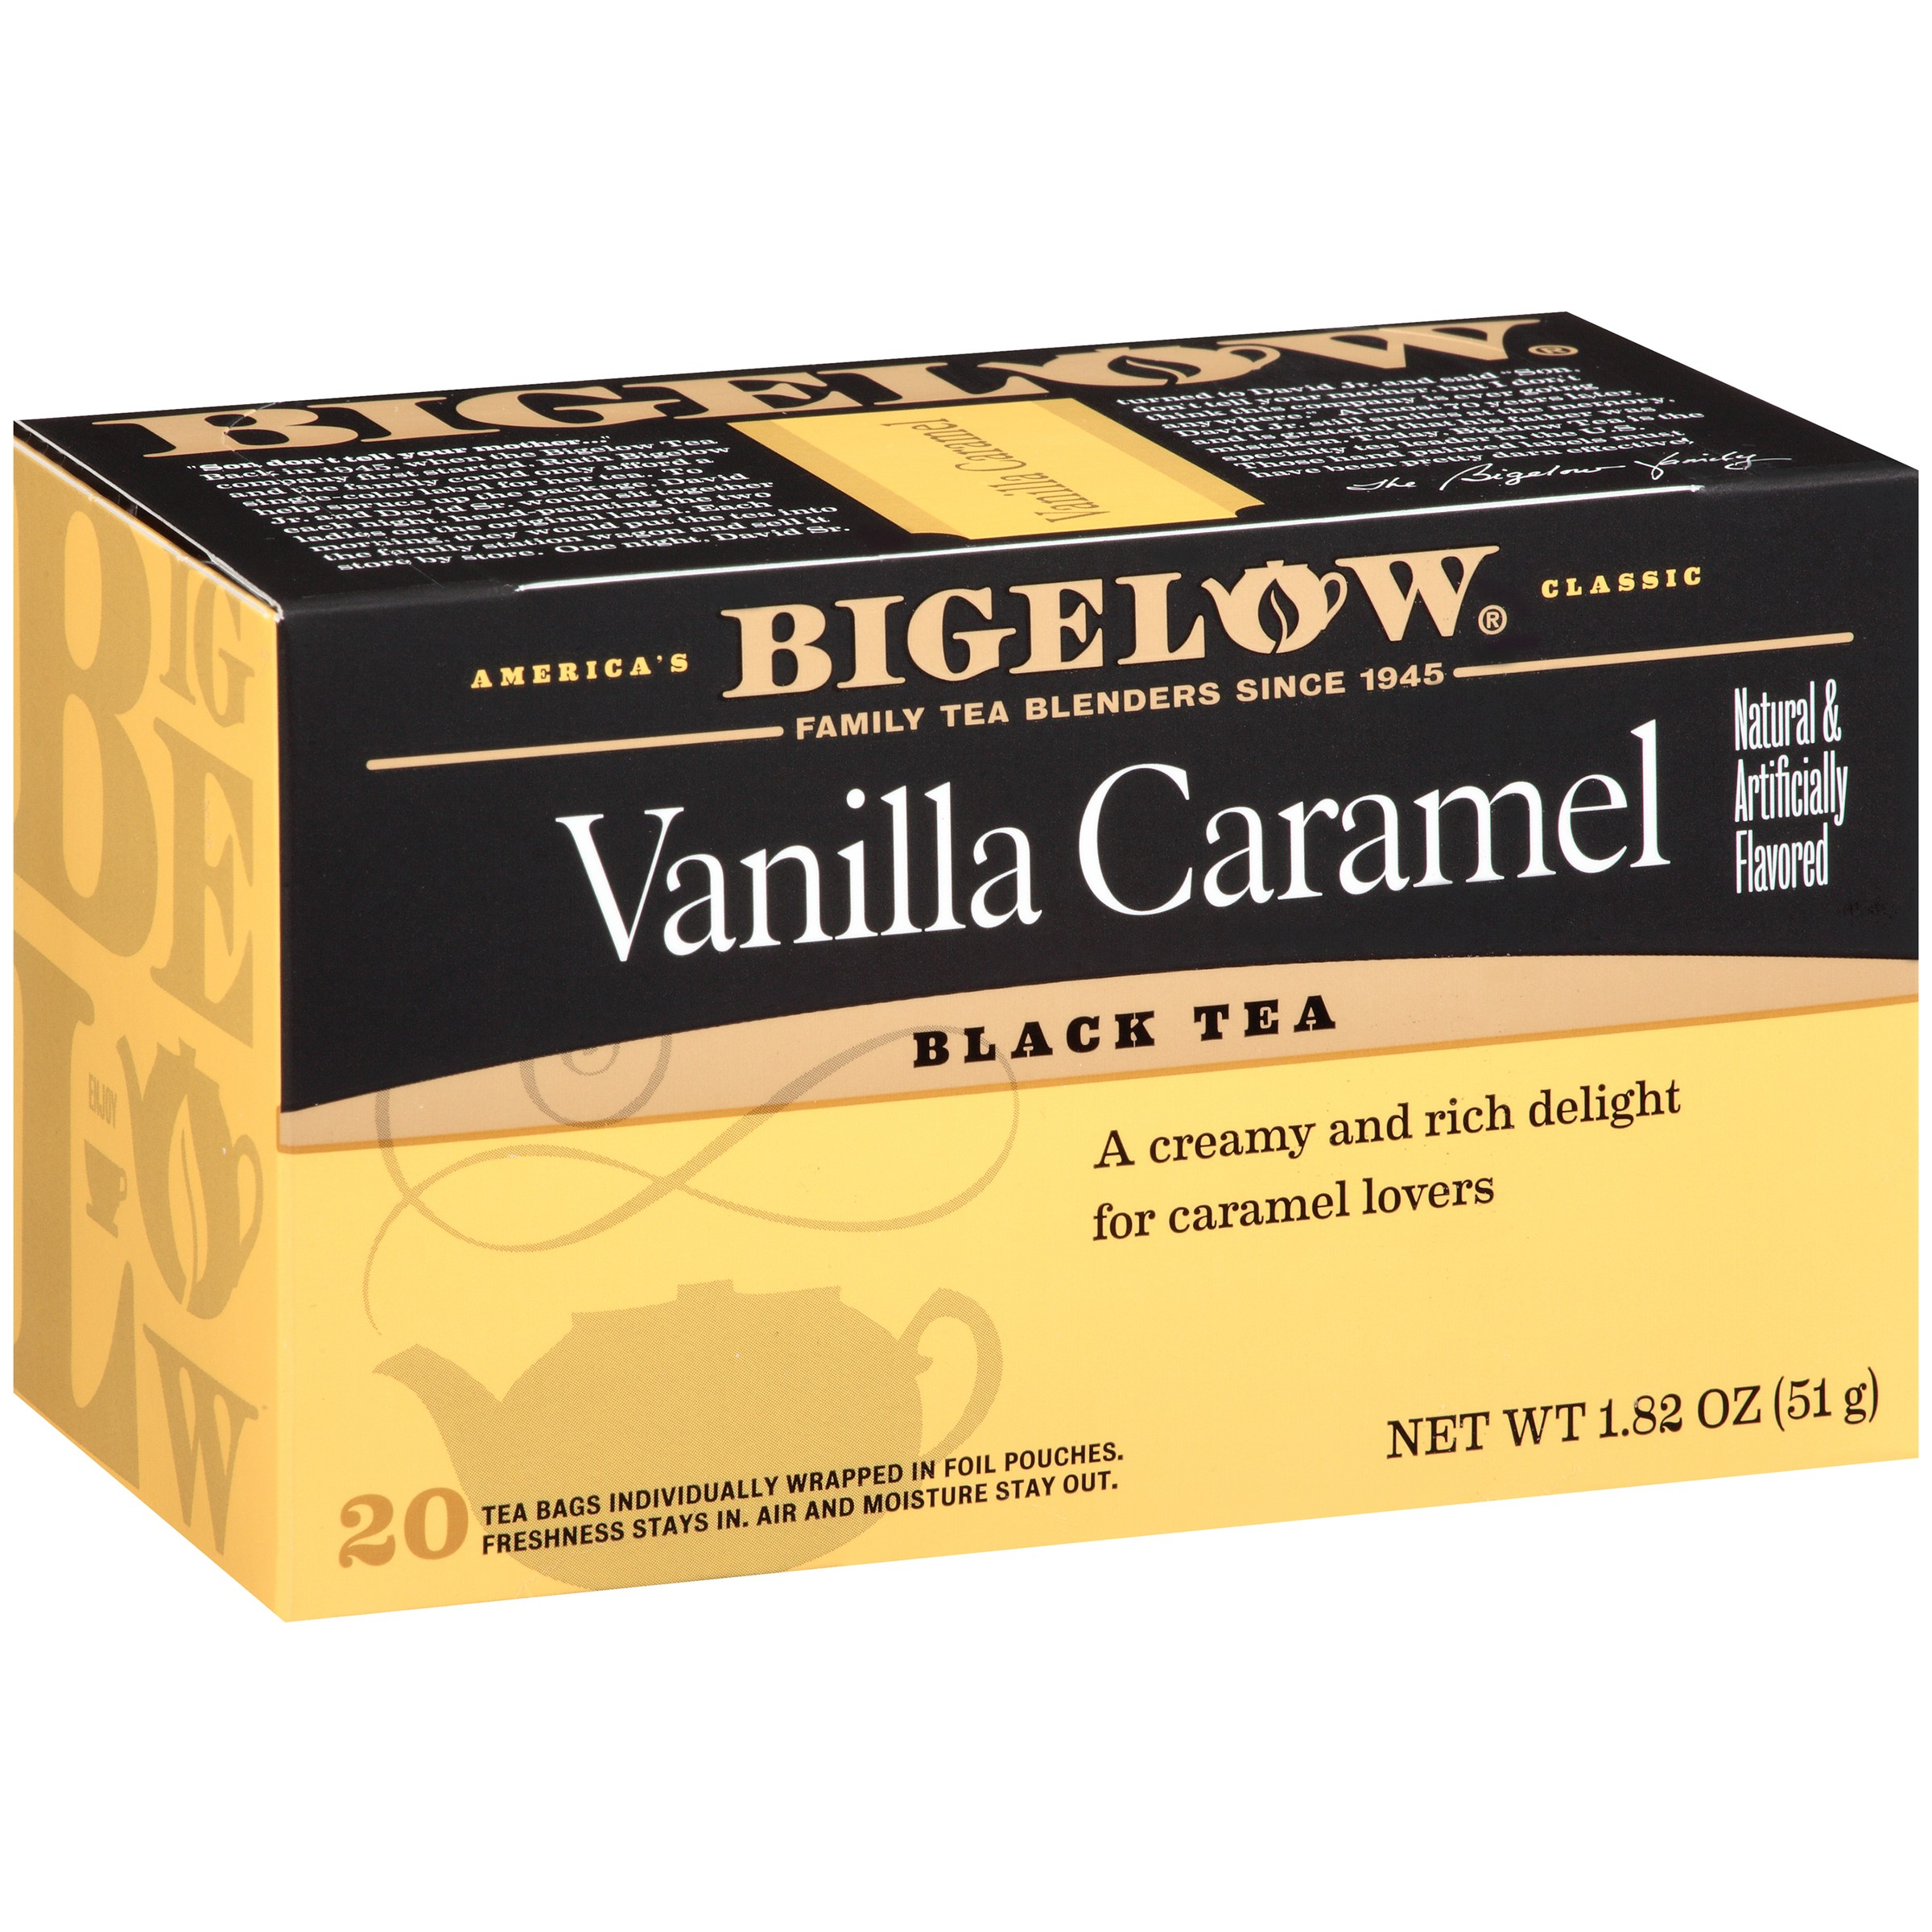 Bigelow Vanilla Caramel Black Tea - 20 CT20.0 CT